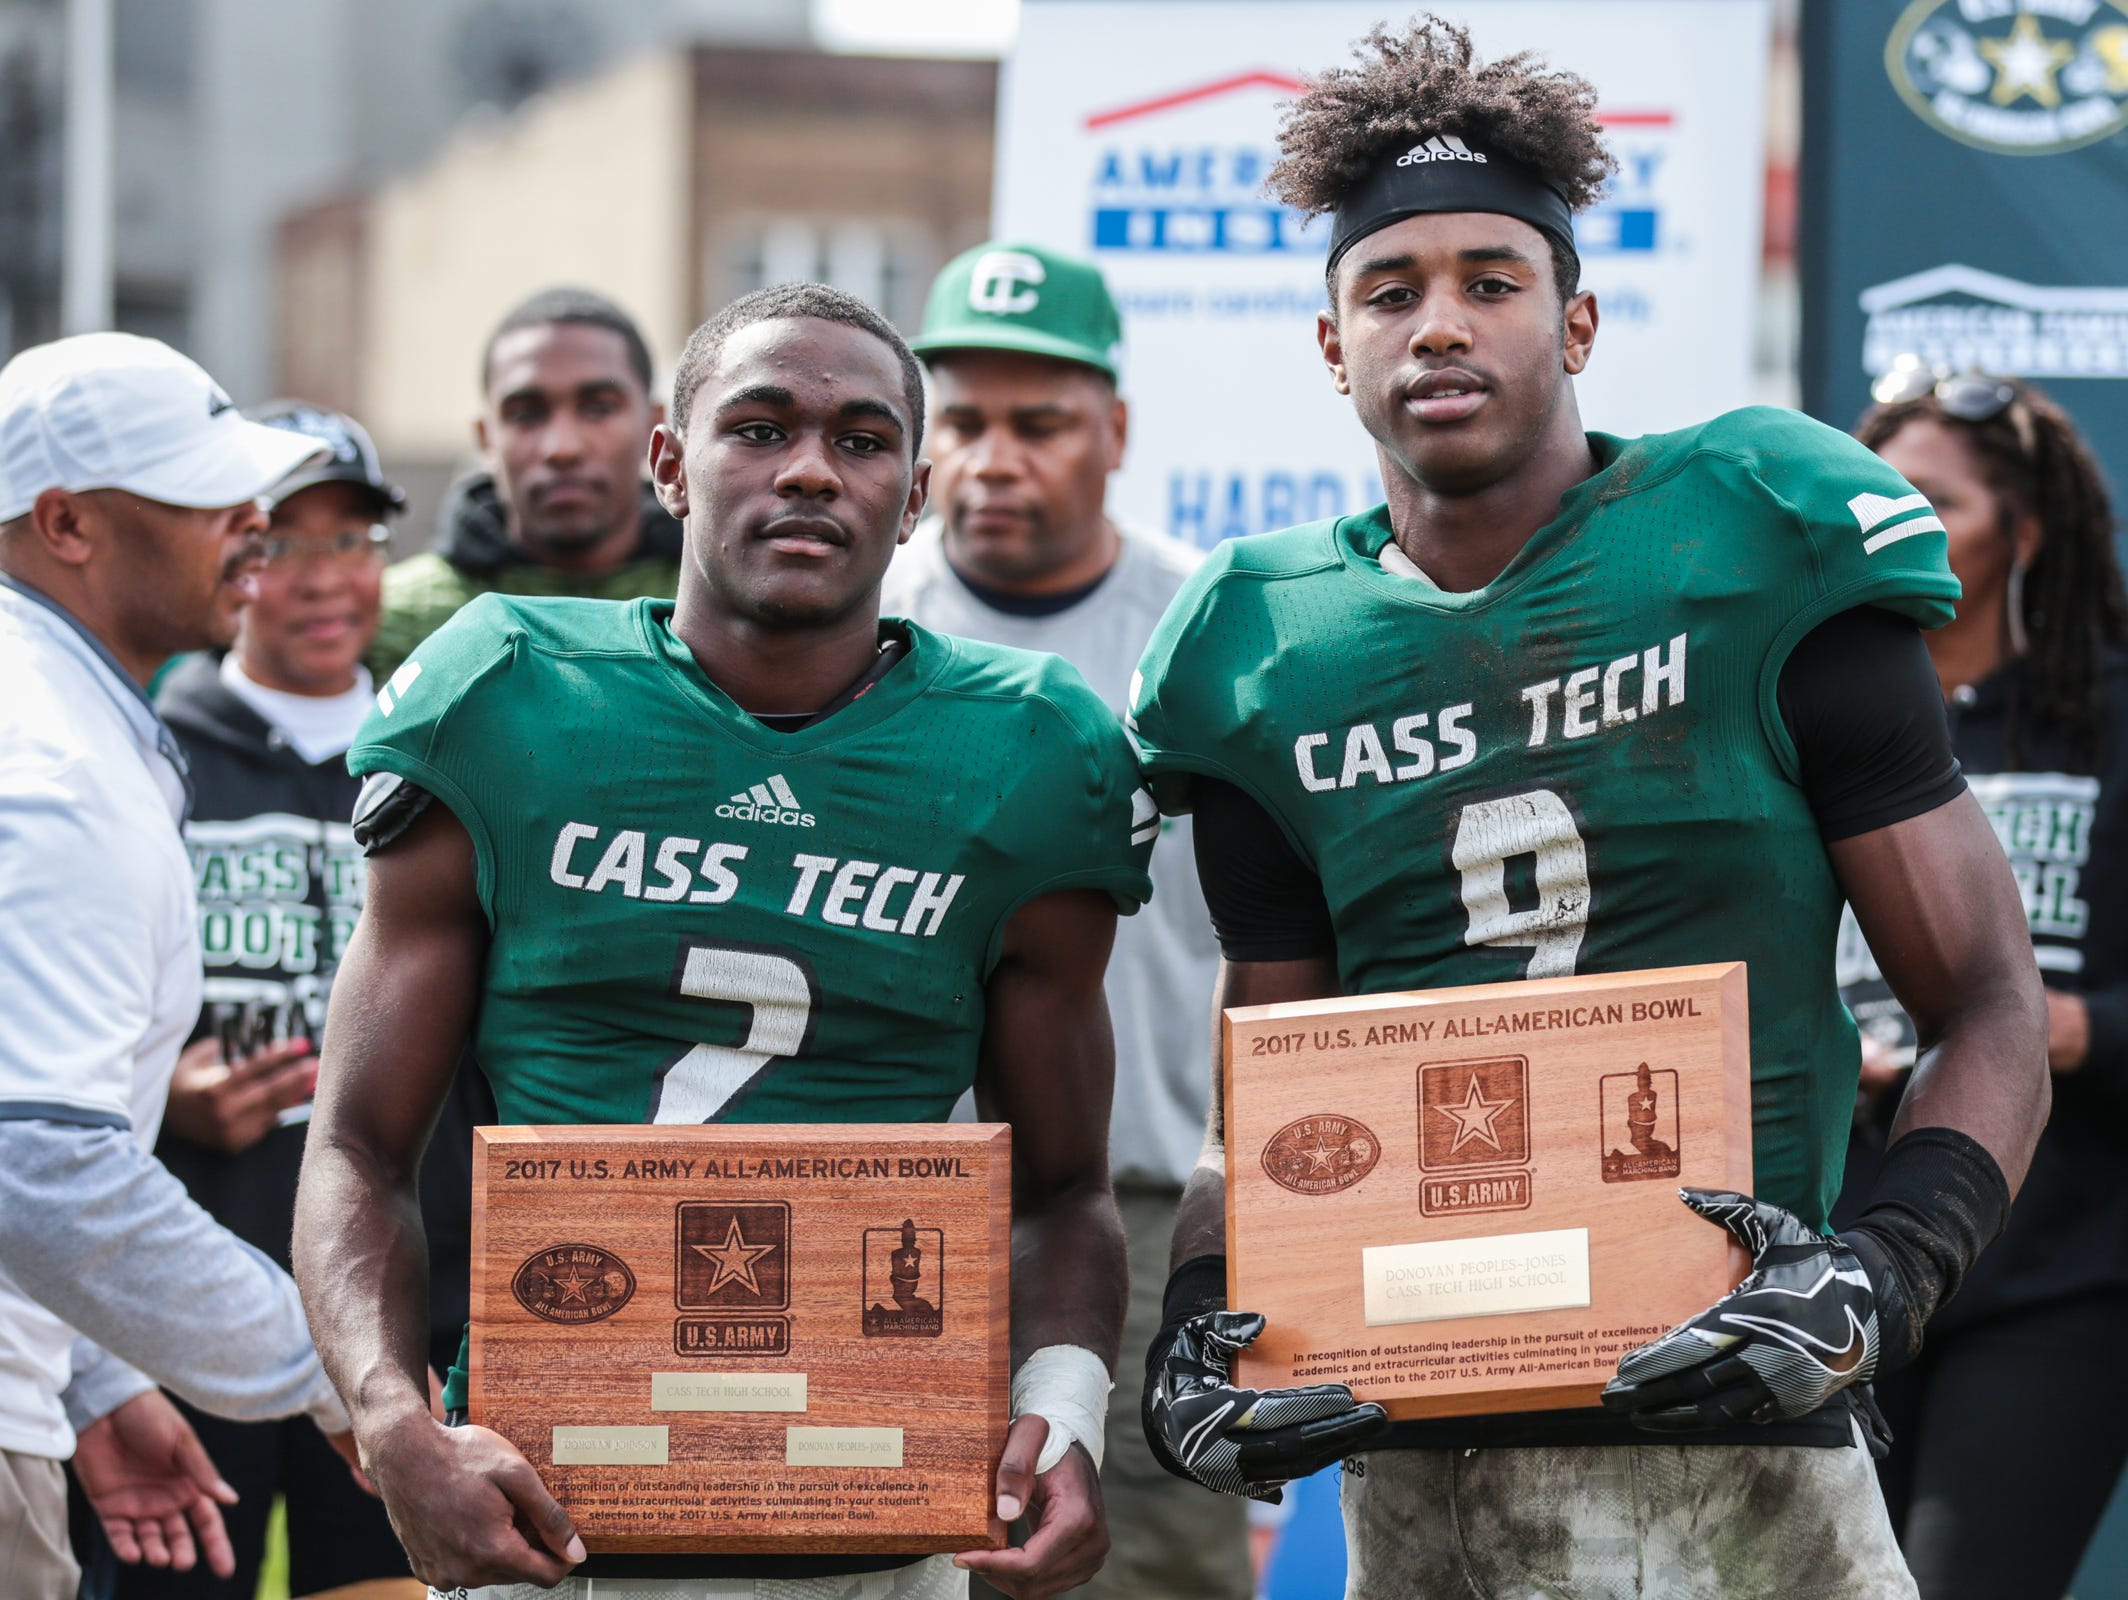 Cass Tech's Donovan Johnson (2) and Donovan Peoples-Jones are honored as 2017 U.S. Army All-Americas during halftime against Detroit King on Oct. 1, 2016, in Detroit.